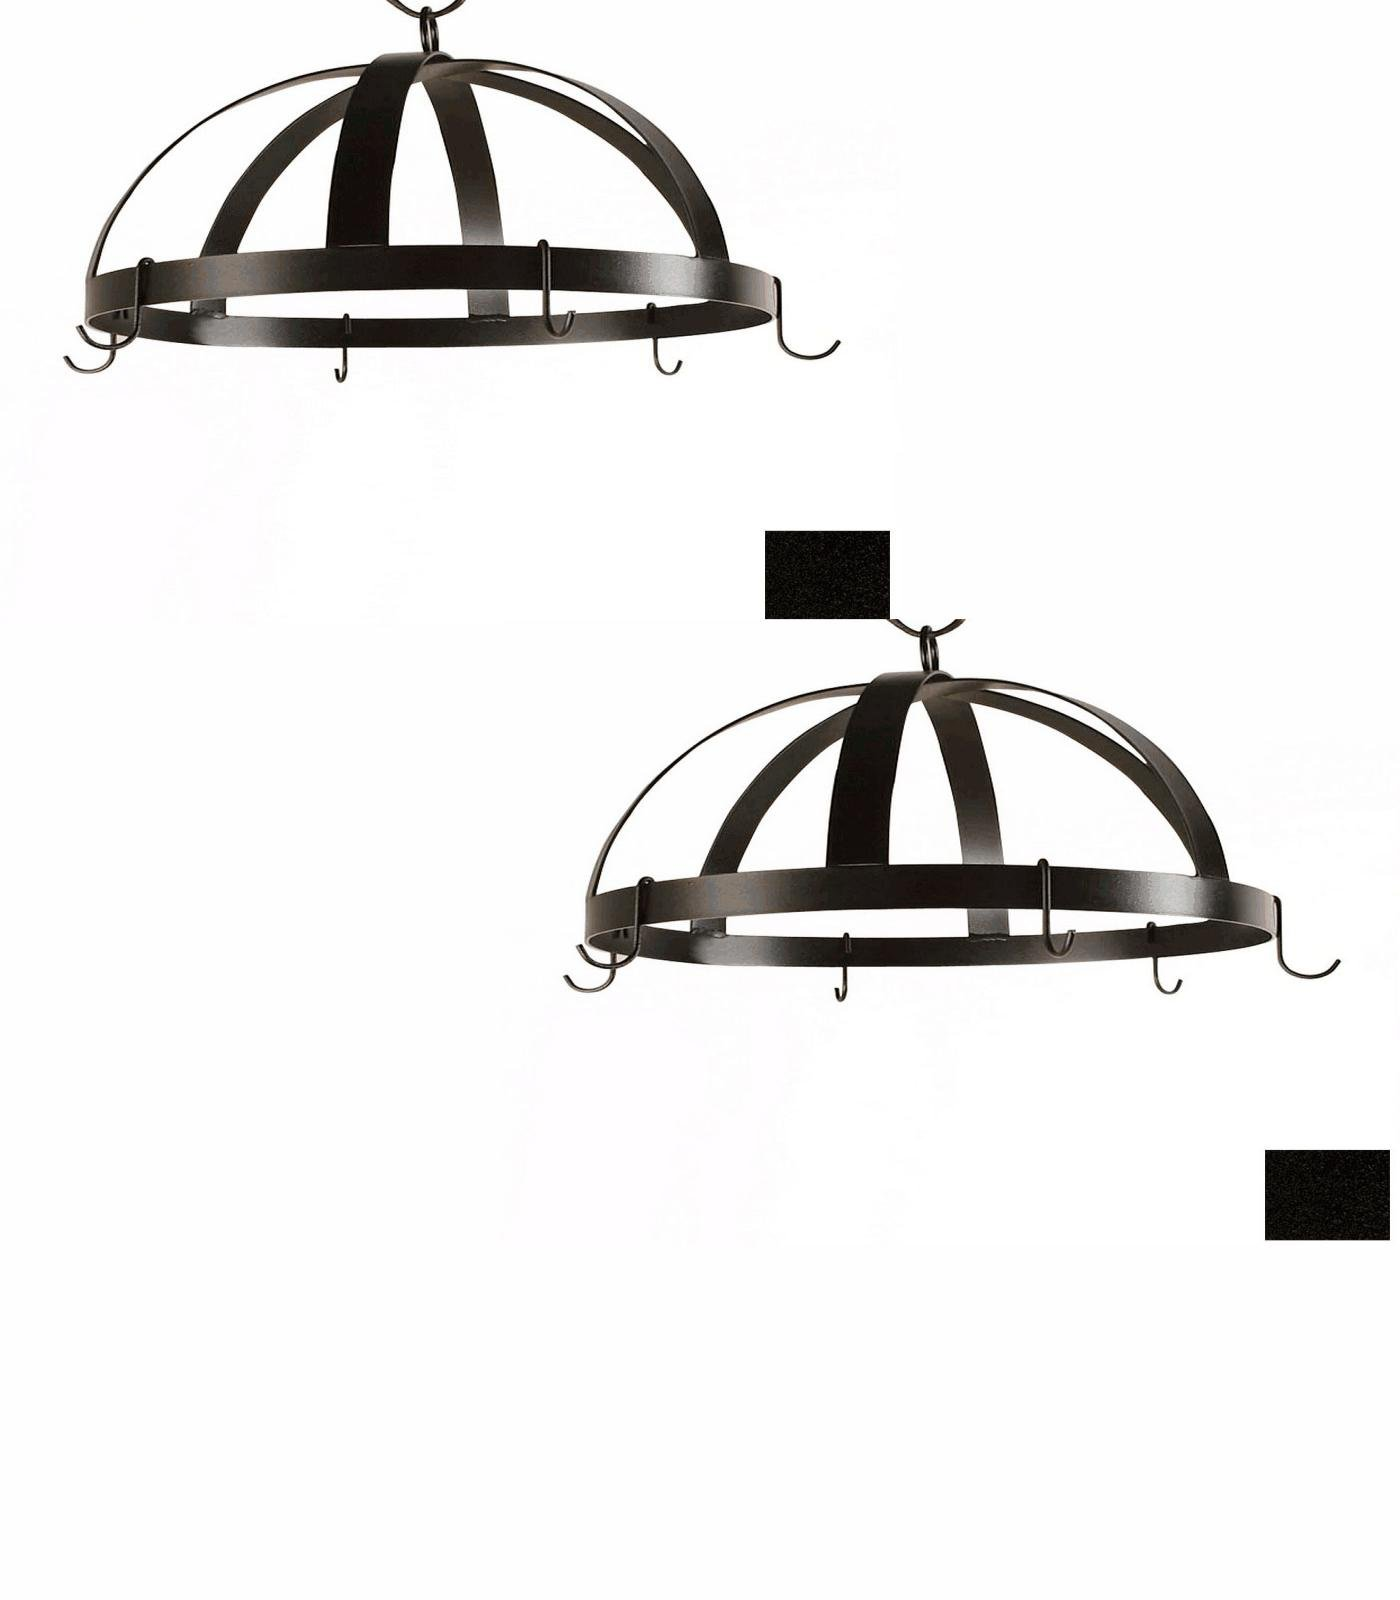 20-in x 20-in Satin Black Dome Pot Rack - Grace Collection Model - GMC-DPR-20-SB - Set of 2 Gift Bundle by Grace Collection